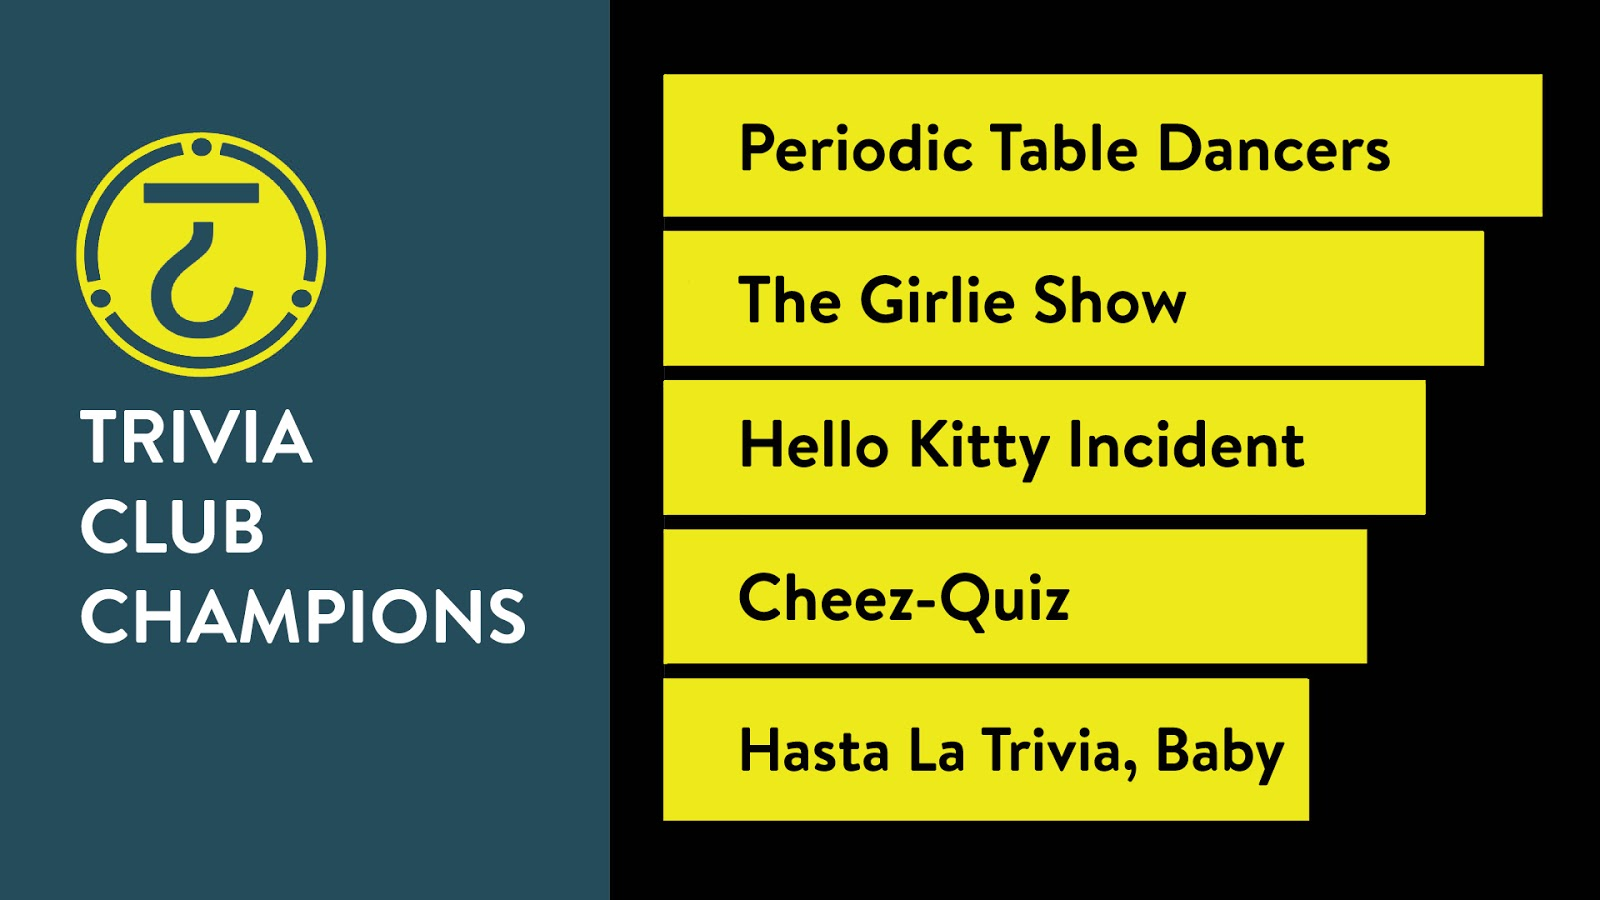 At the rec room periodic table dancers june 26th 2018 trivia club well see you all again next tuesday for another edition of trivia club at the rec room on july 3rd urtaz Gallery